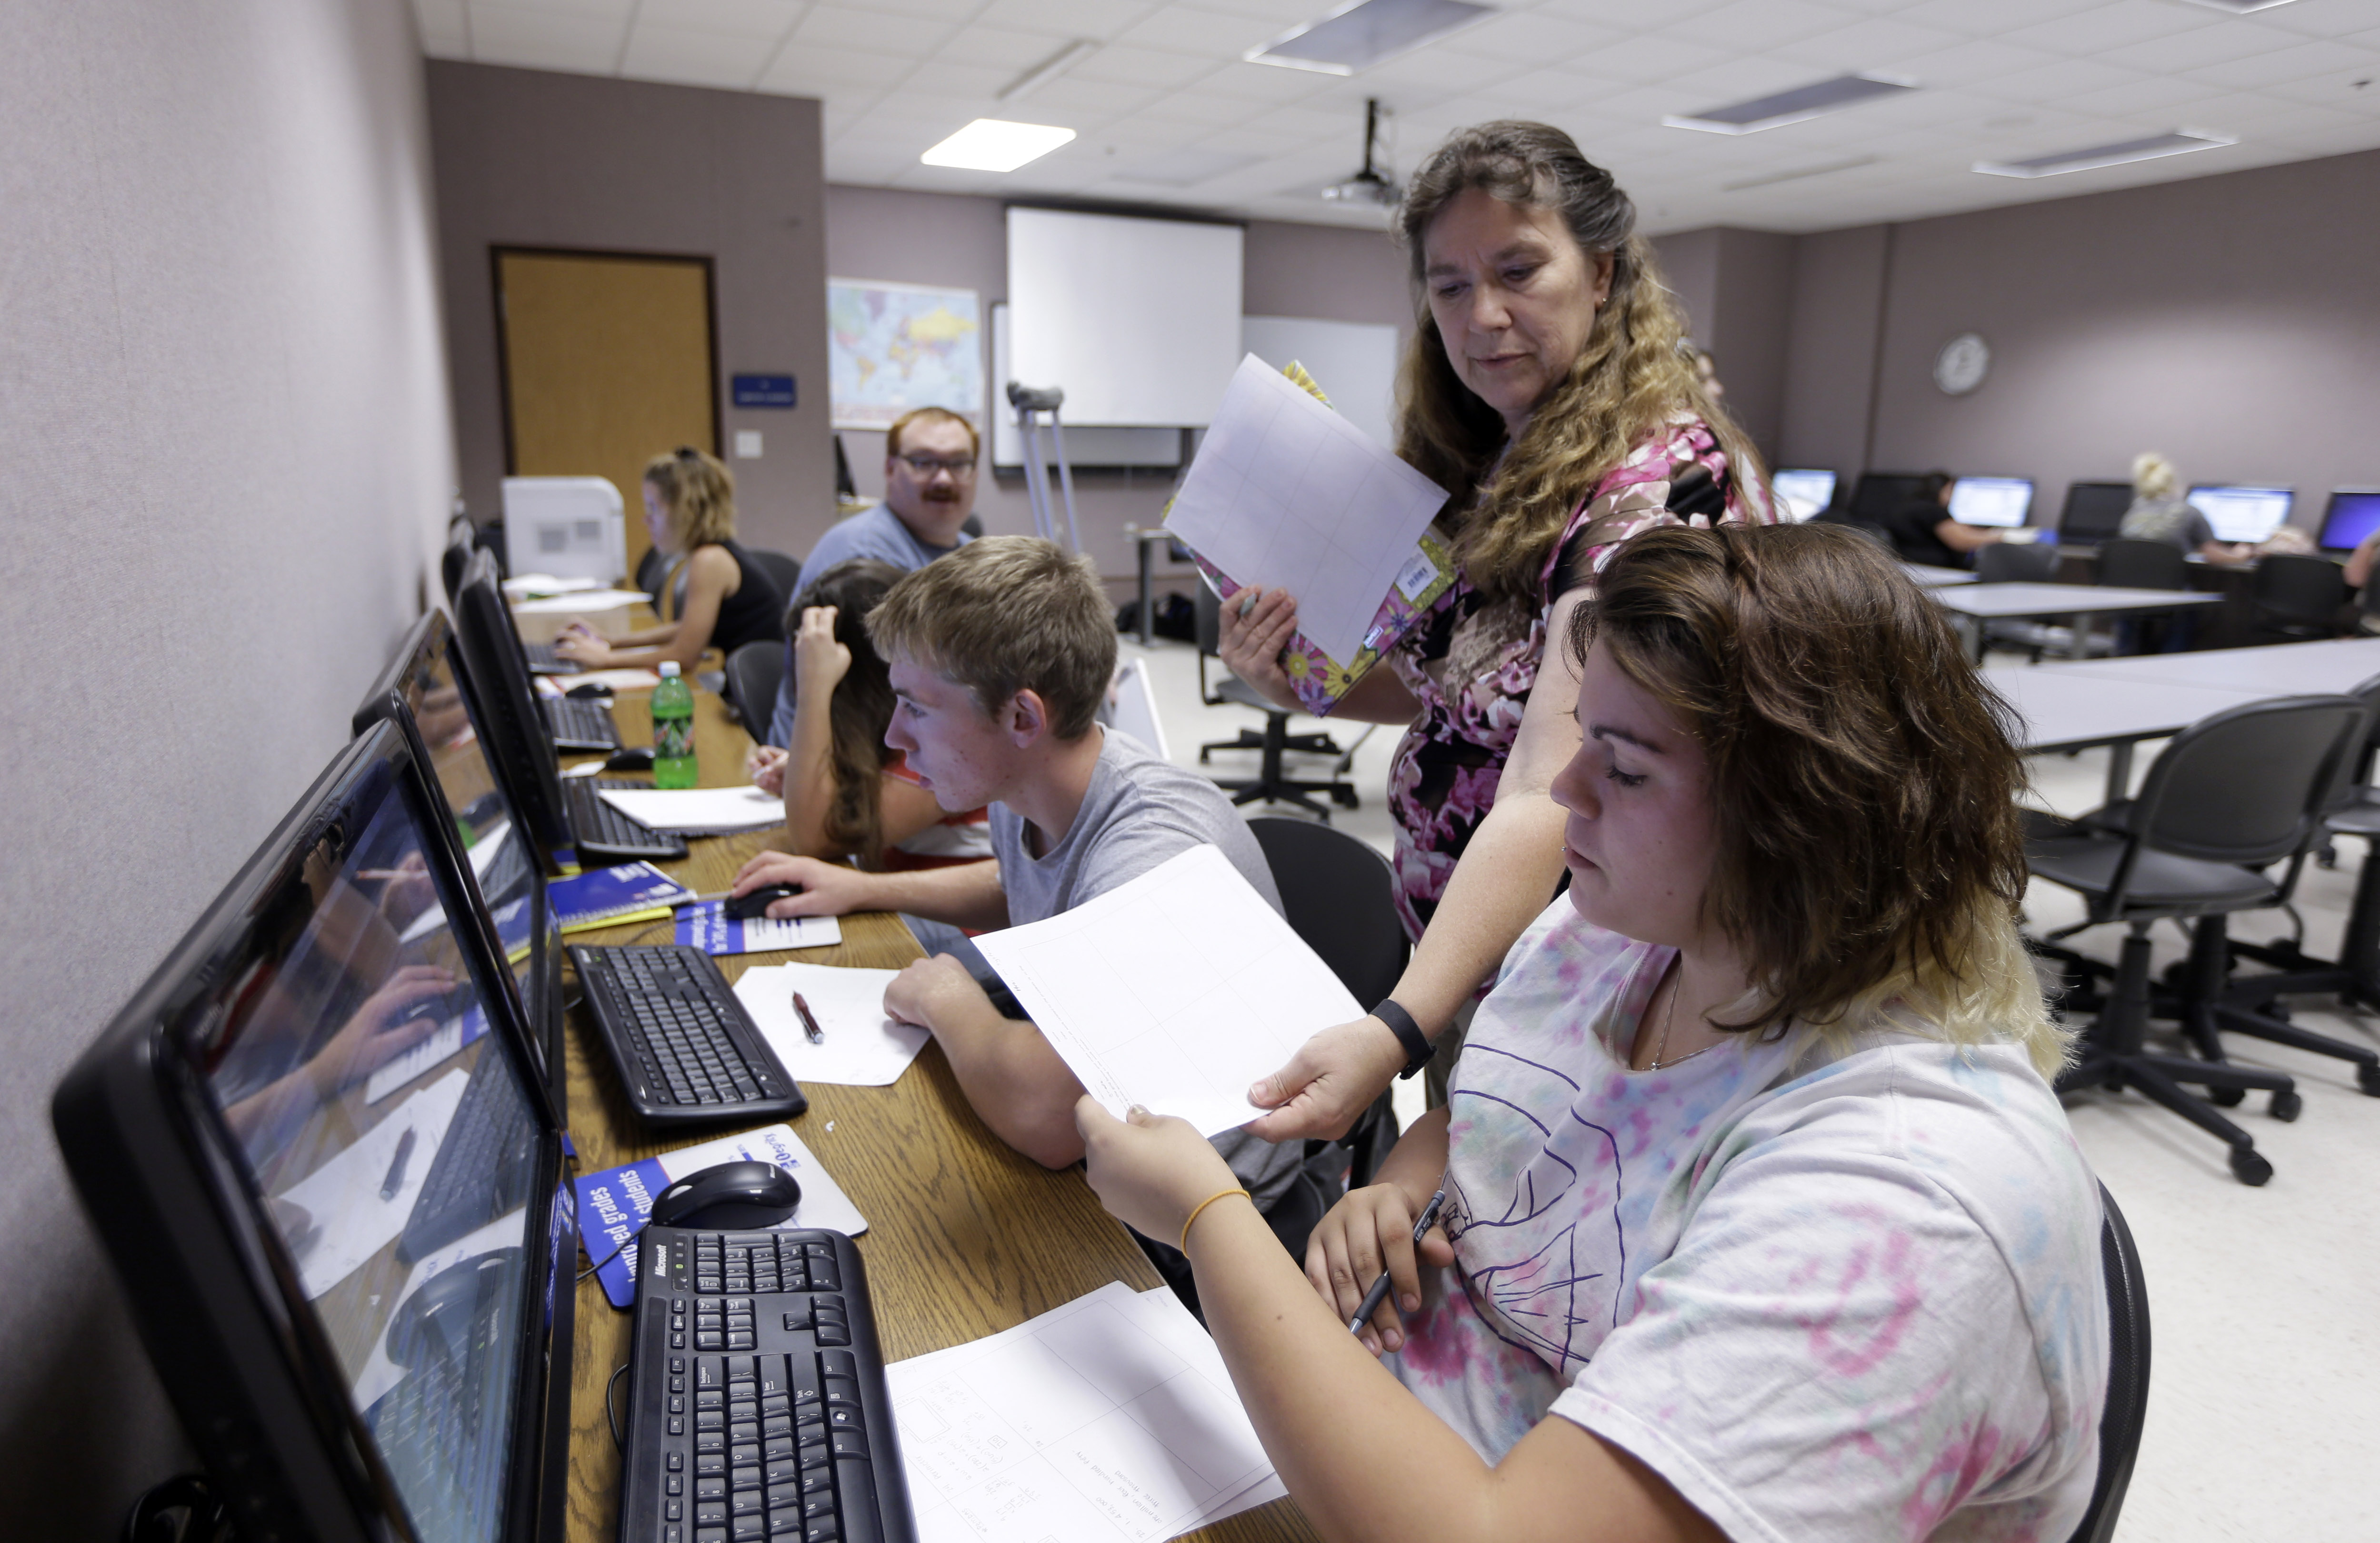 Worksheet Remedial Learning schools and colleges still struggle to reduce the need for remedial education us news